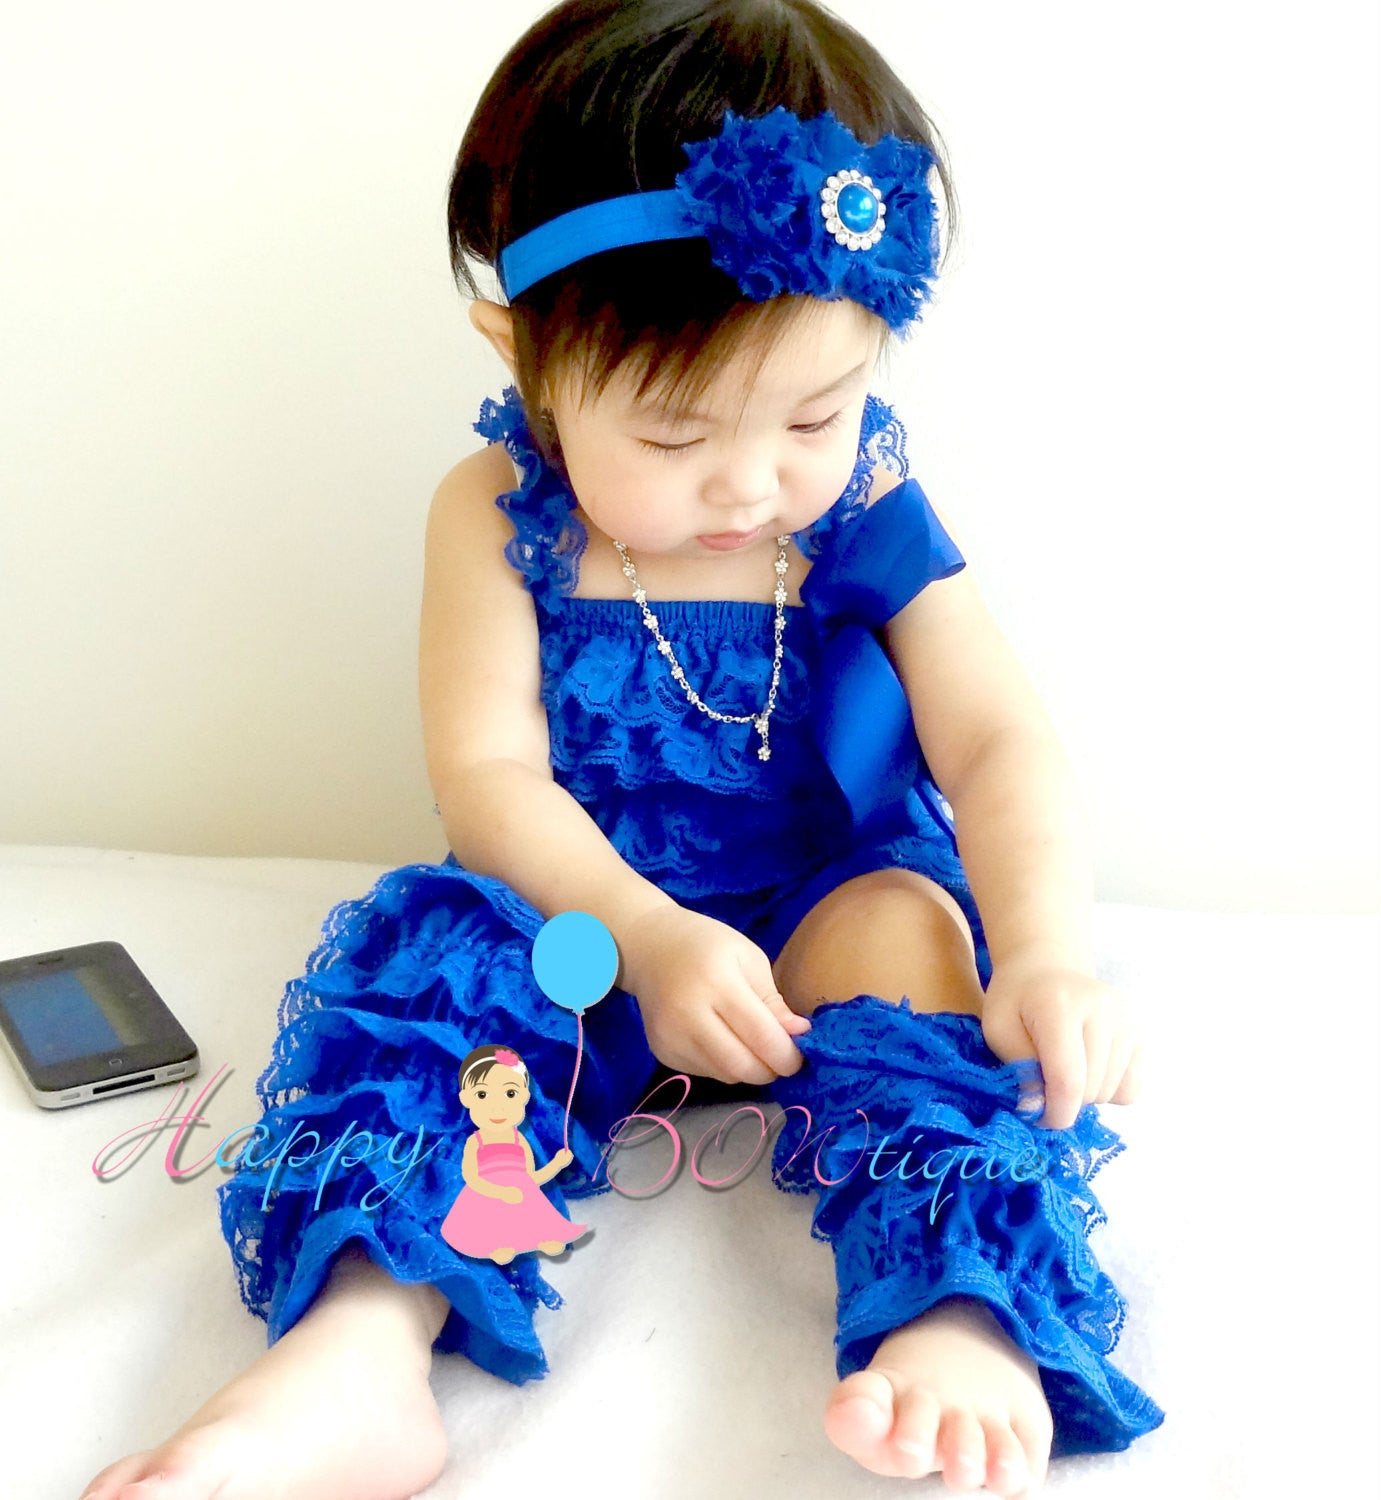 Royal Blue Petti lace Romper - Happy BOWtique - children's clothing, Baby Girl clothing